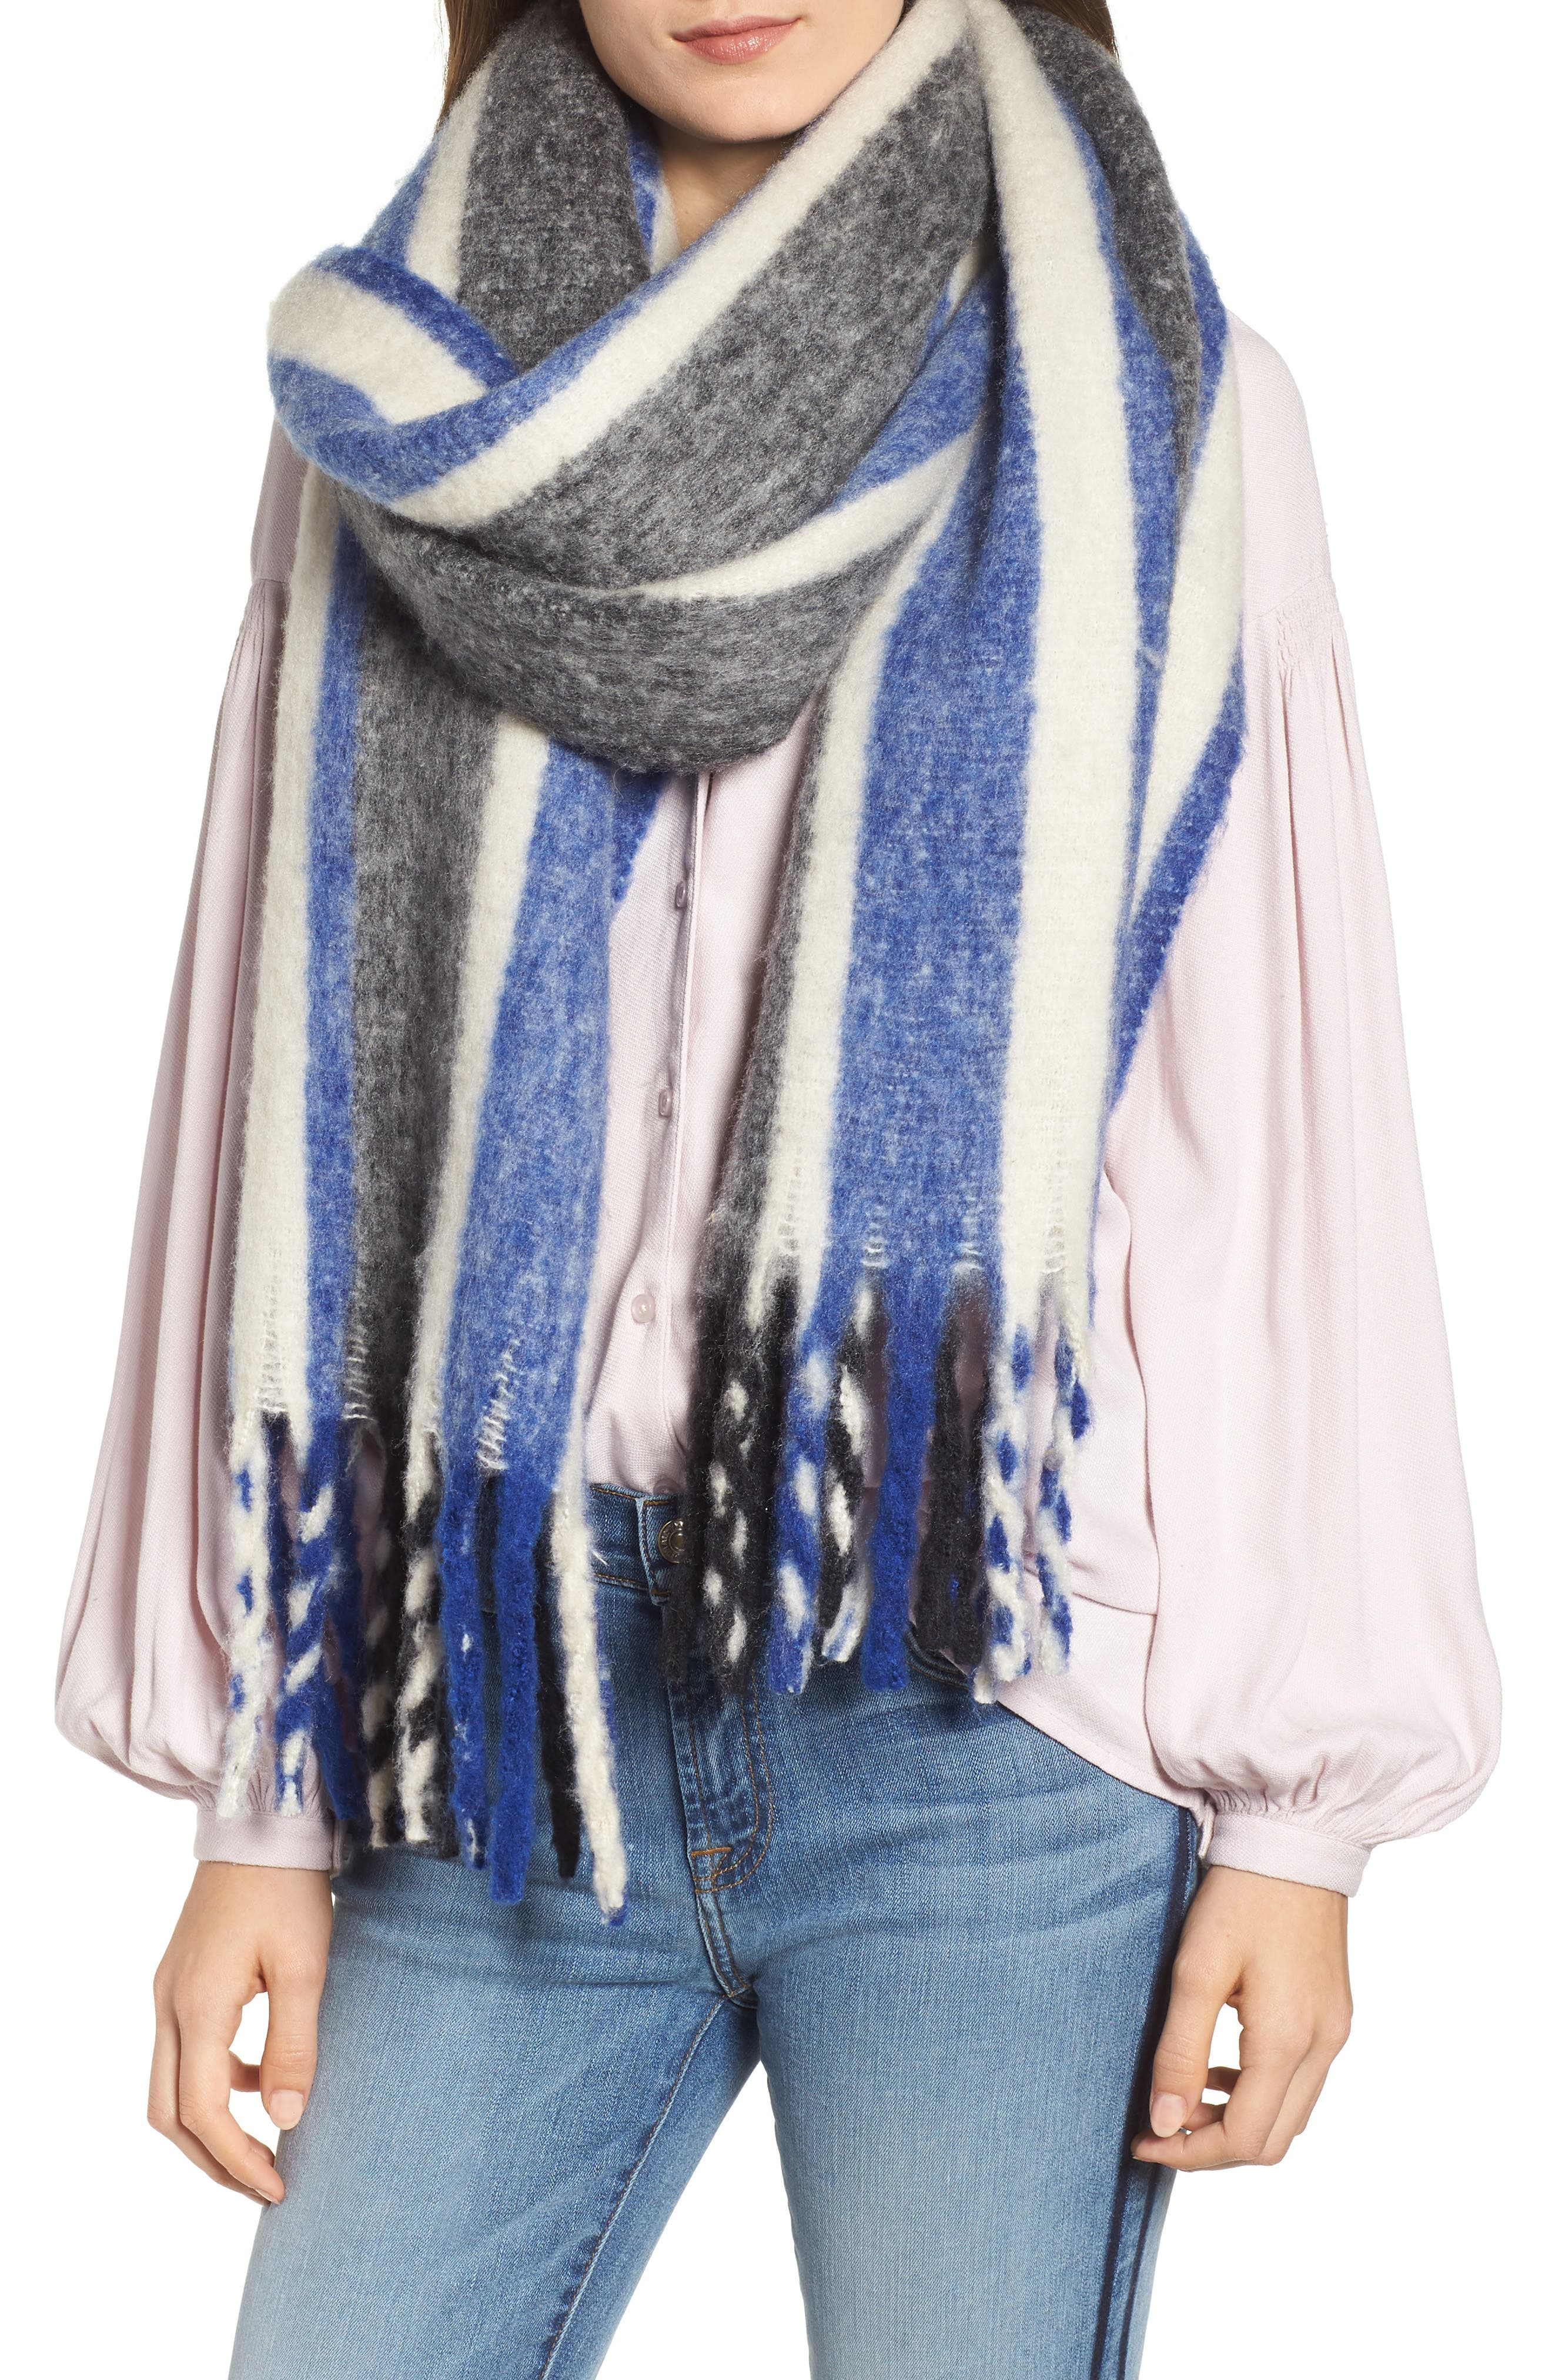 TREASURE & BOND, Striped Scarf, Main thumbnail 1, color, 400